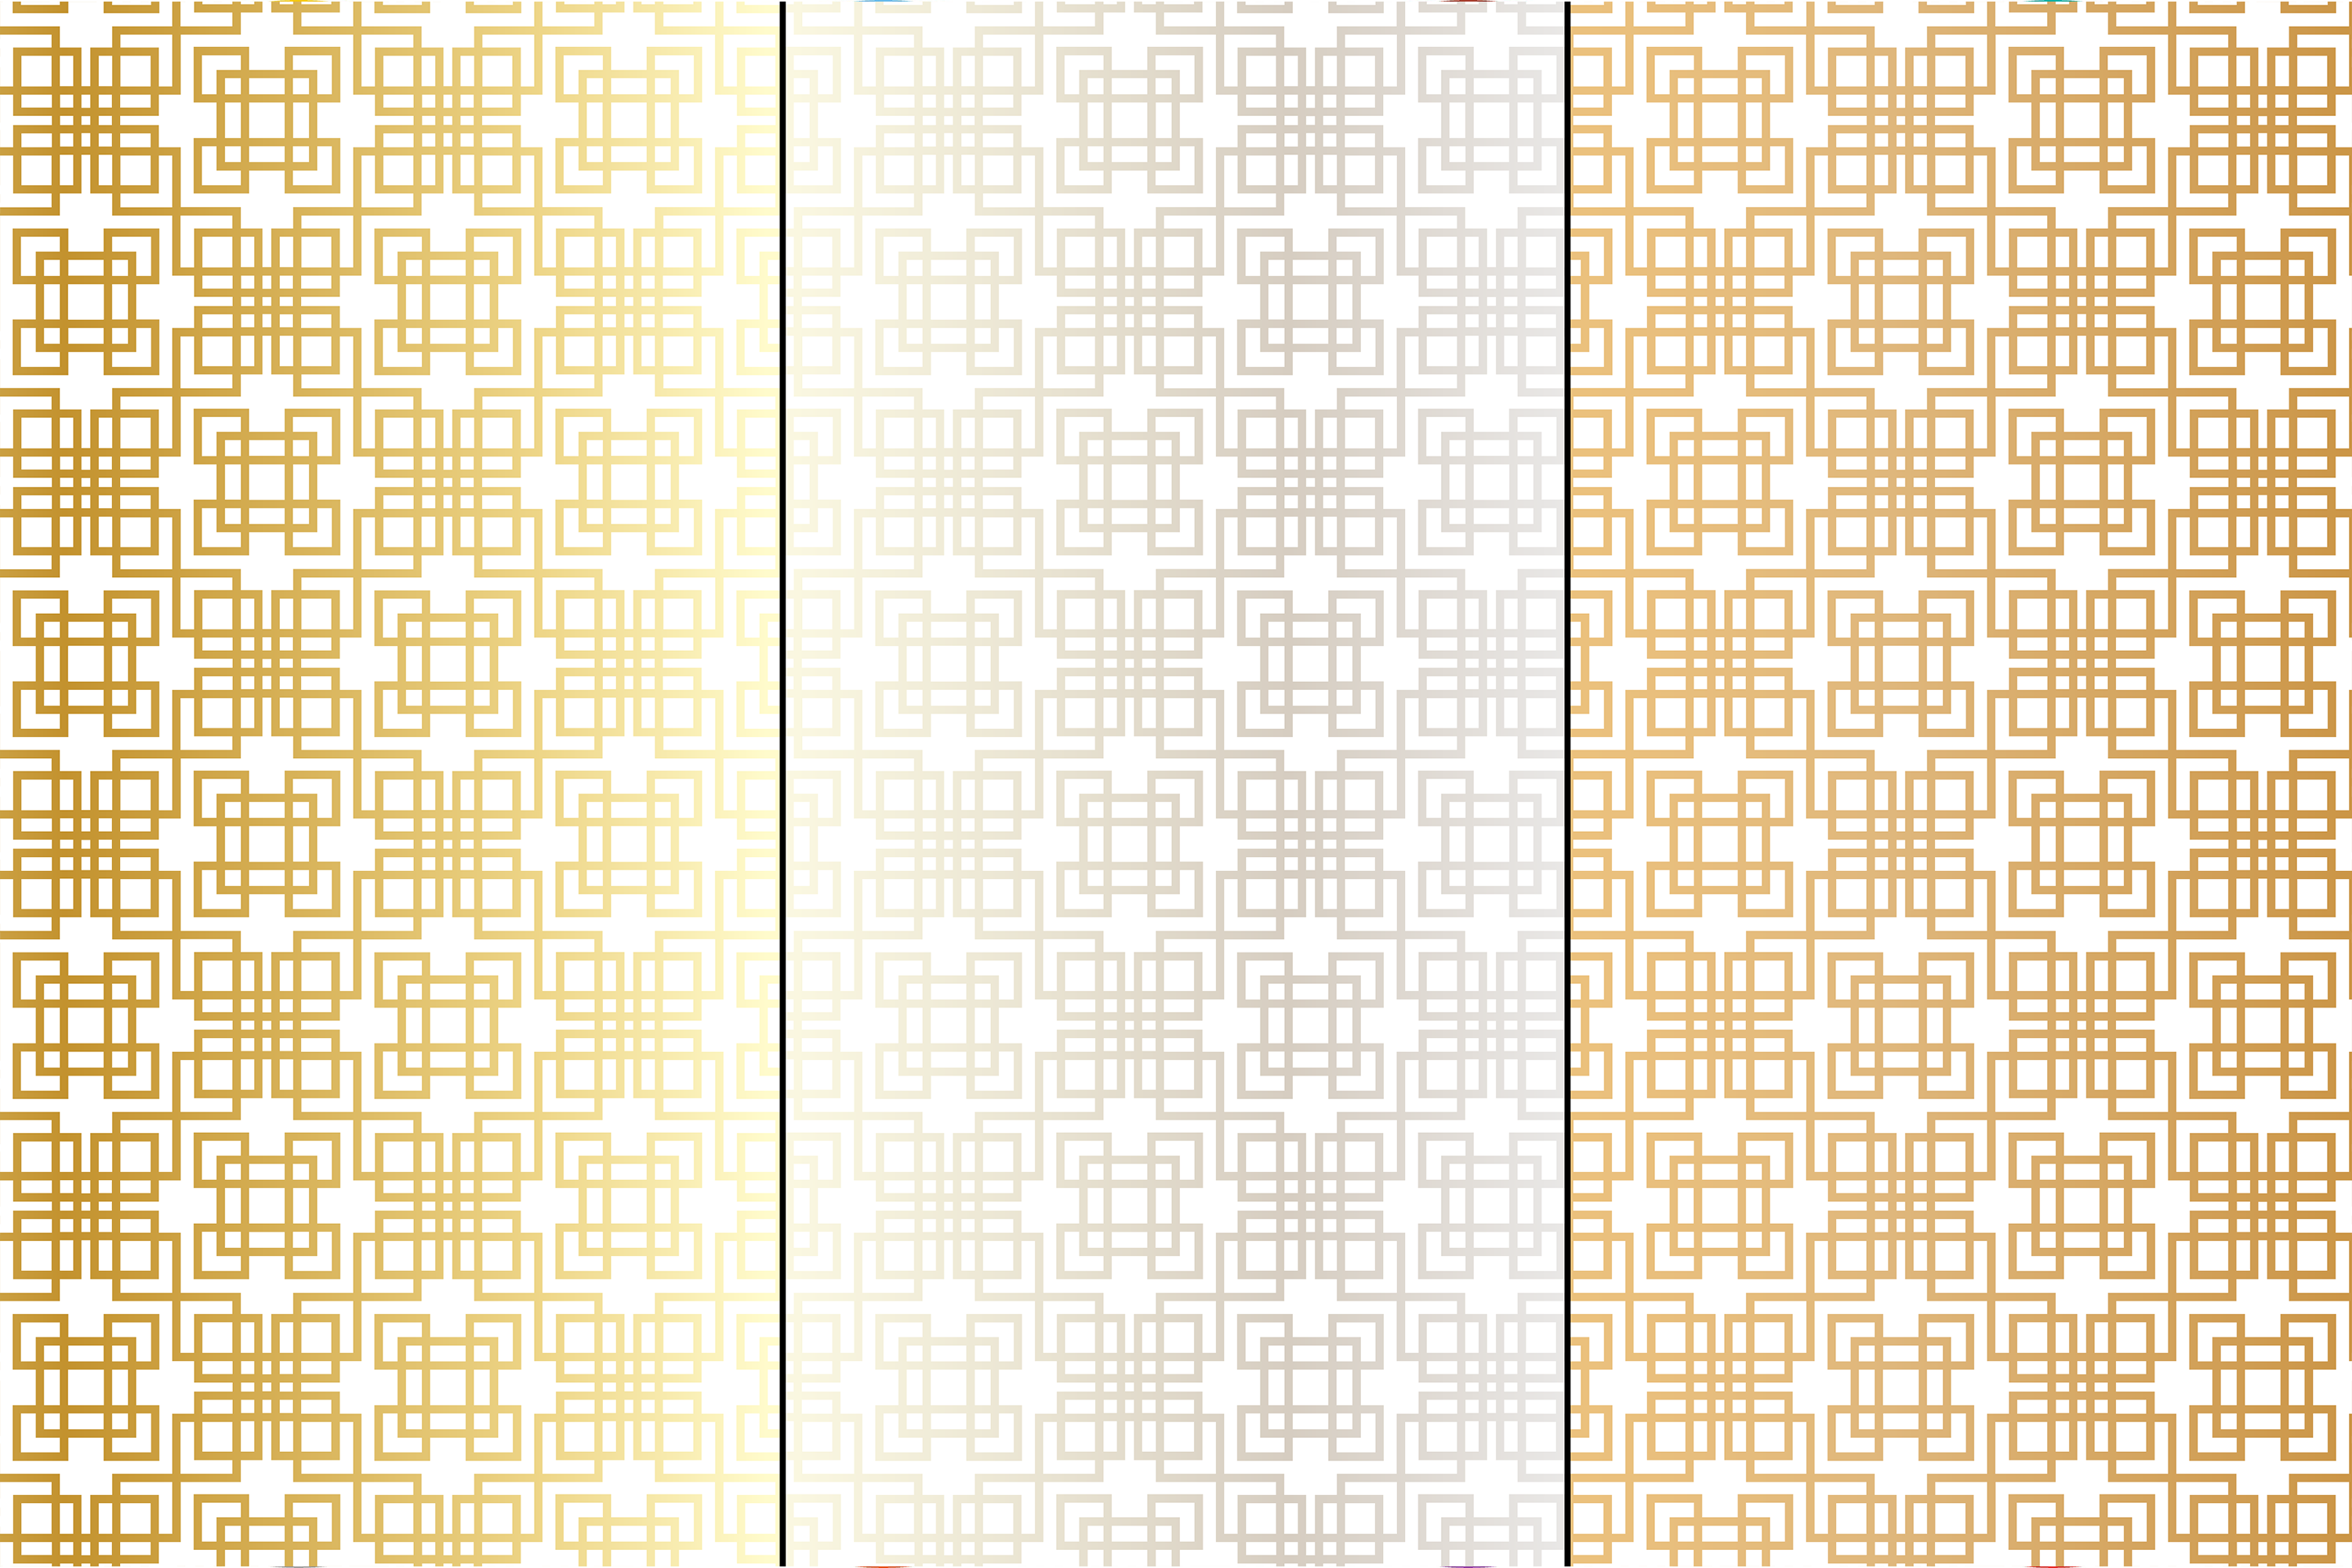 Metallic Fretwork Patterns example image 2